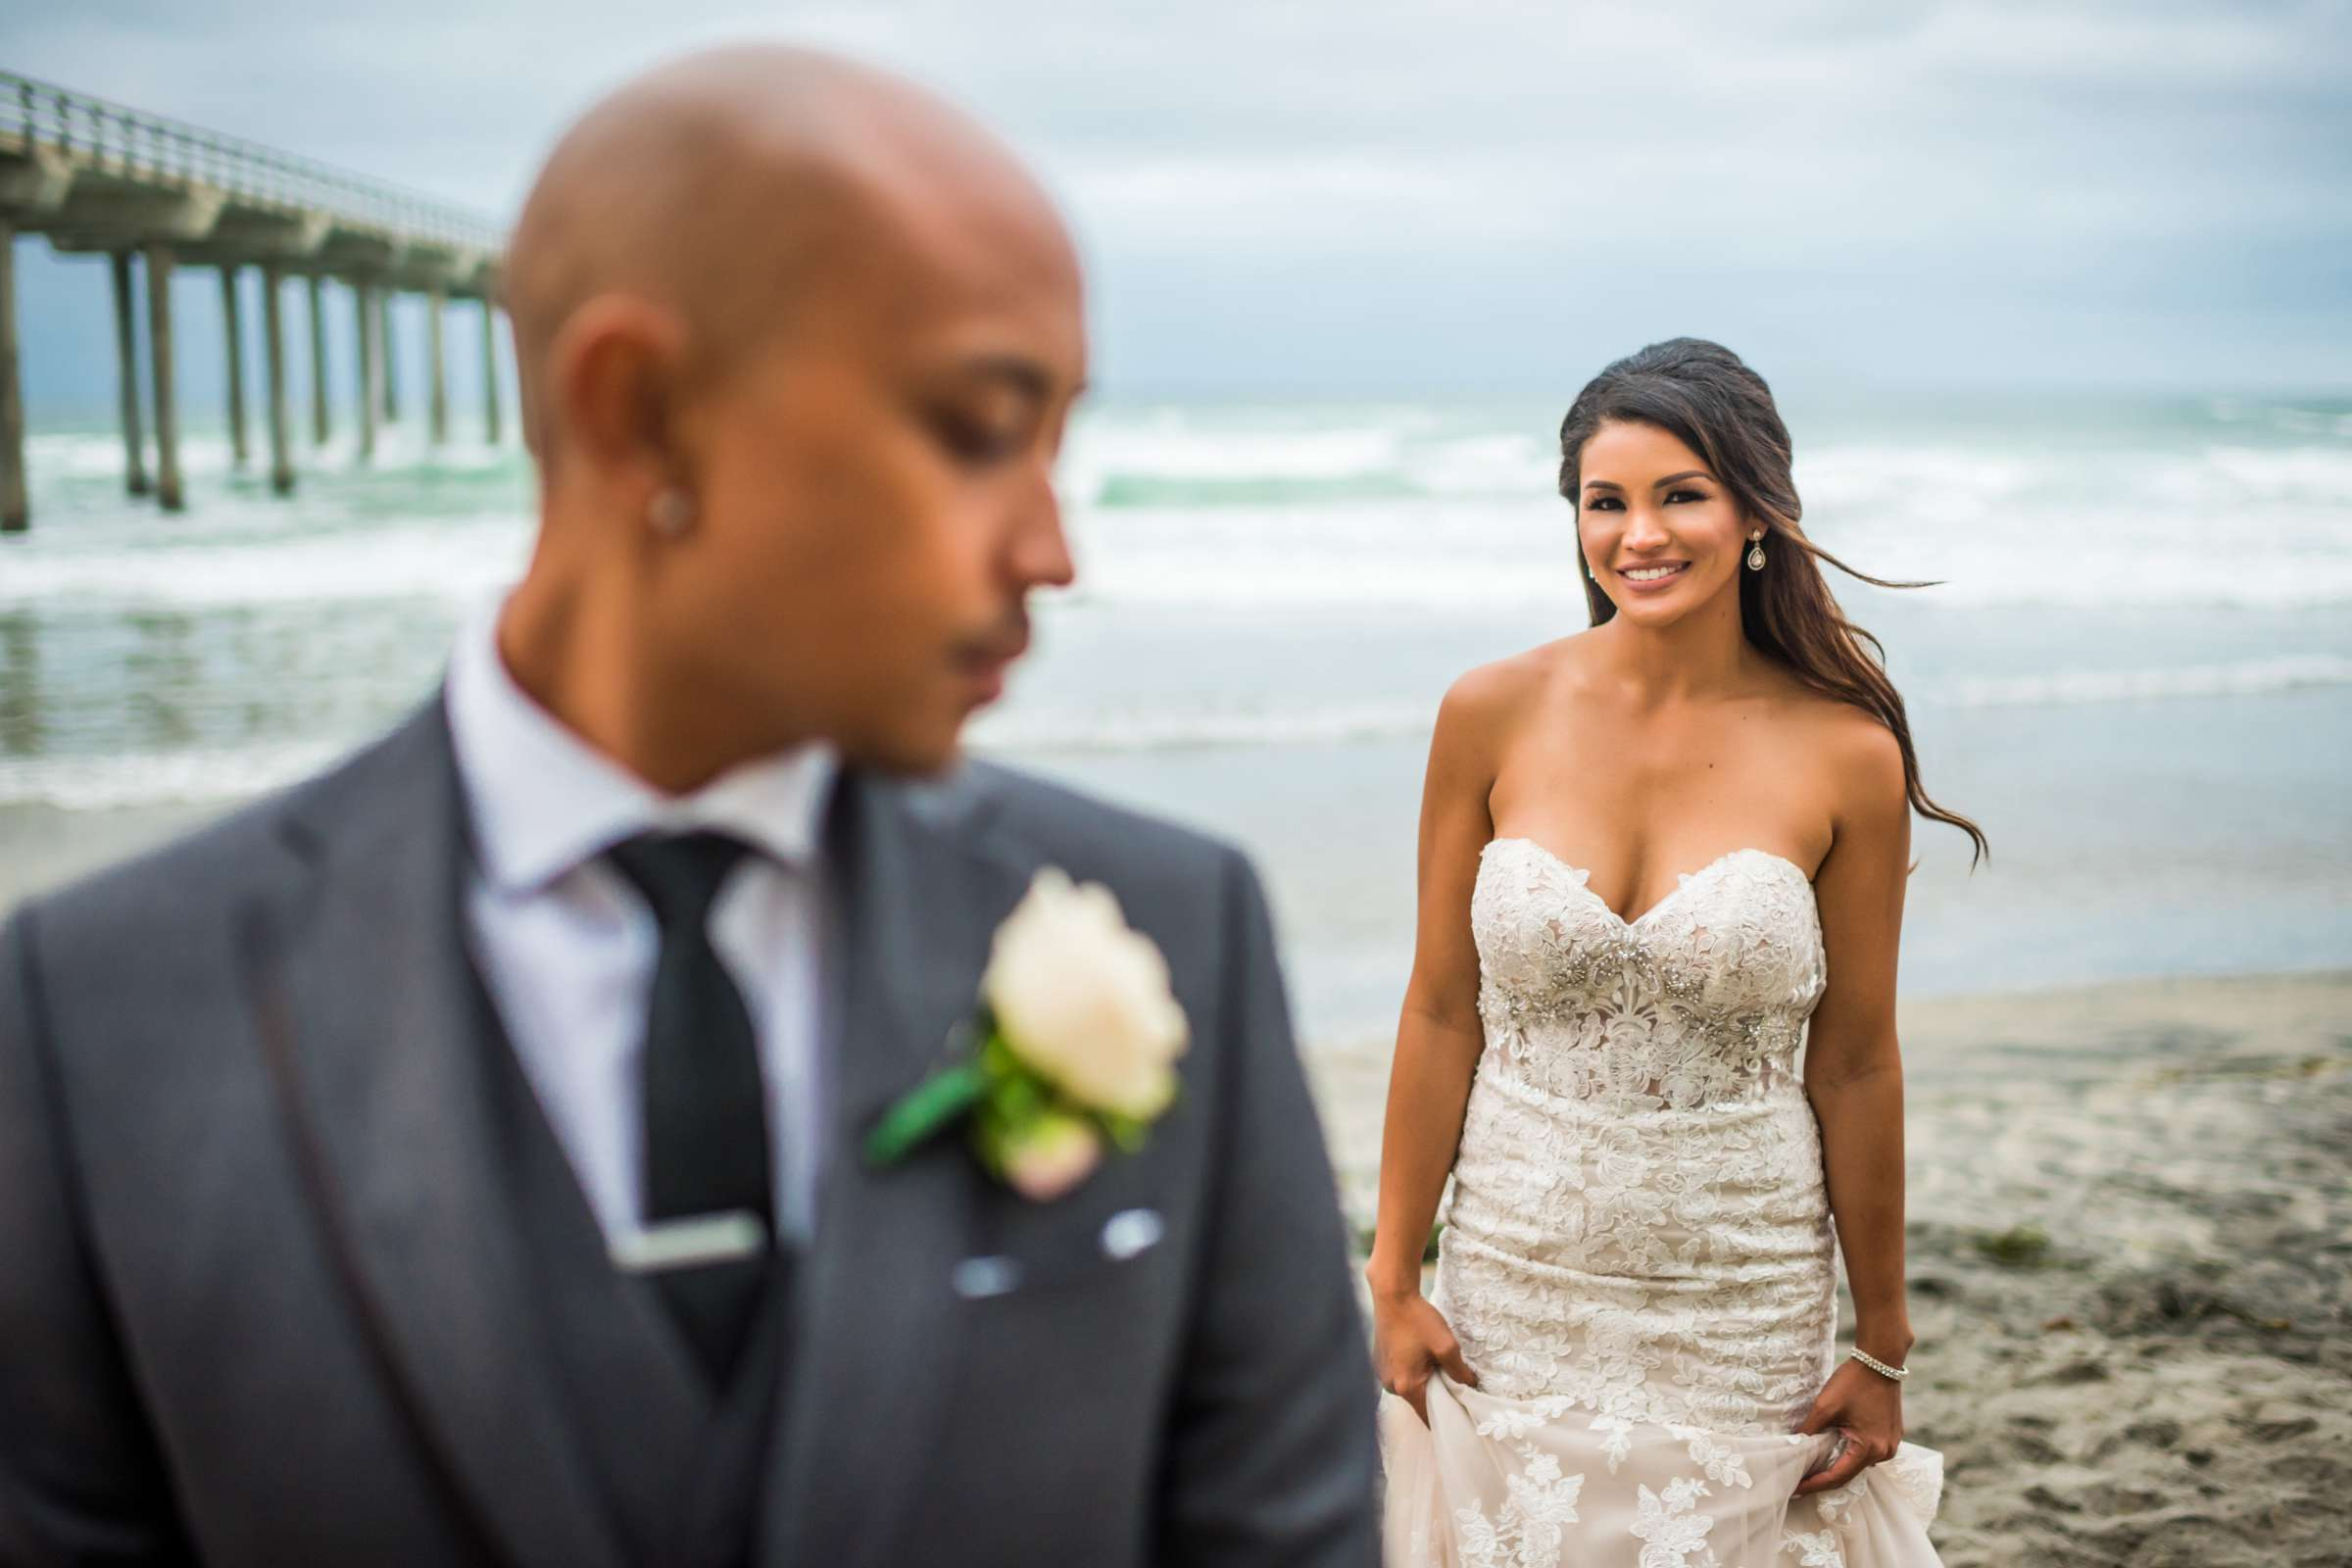 Scripps Seaside Forum Wedding coordinated by Lavish Weddings, Cindy and Justin Wedding Photo #381759 by True Photography